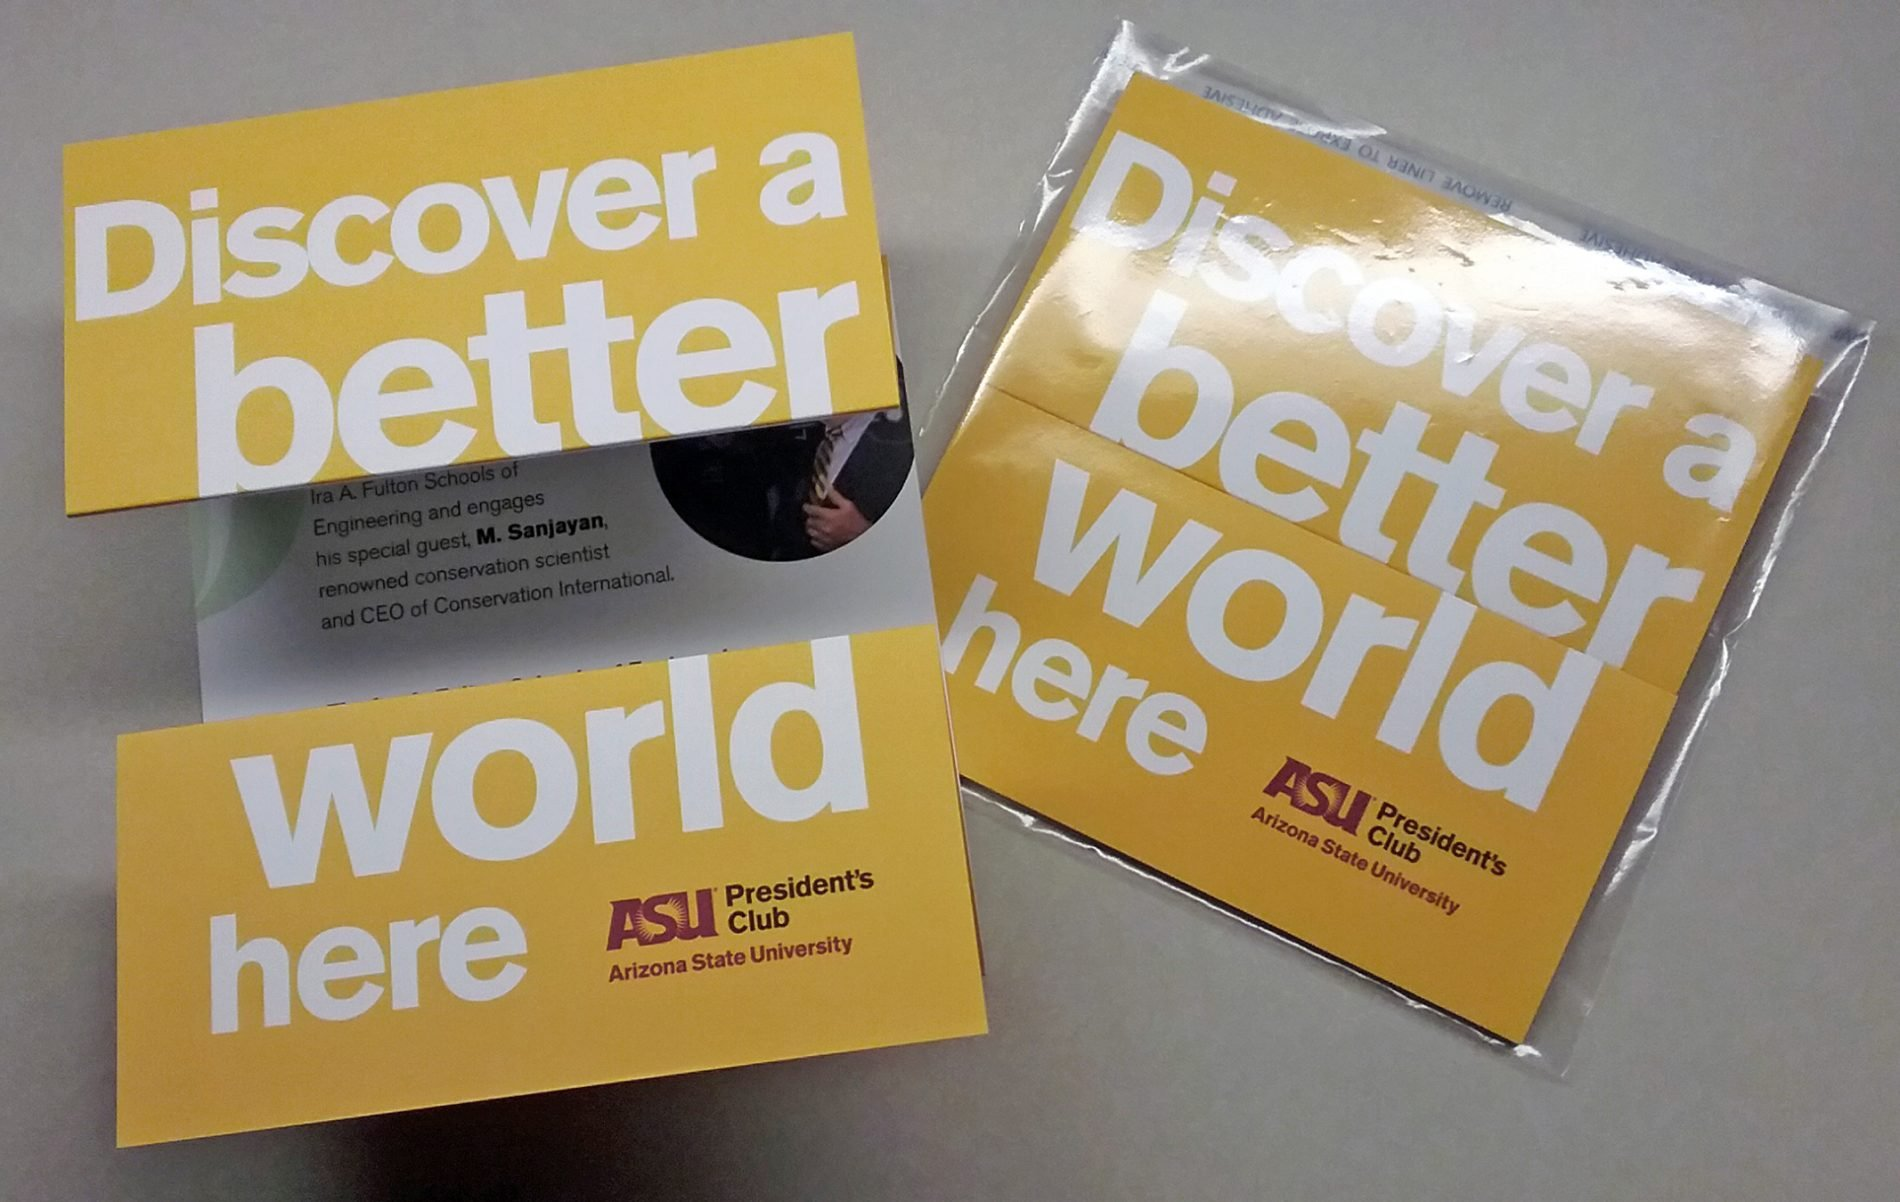 ASU-Presidents-Club-Discover-Better-World